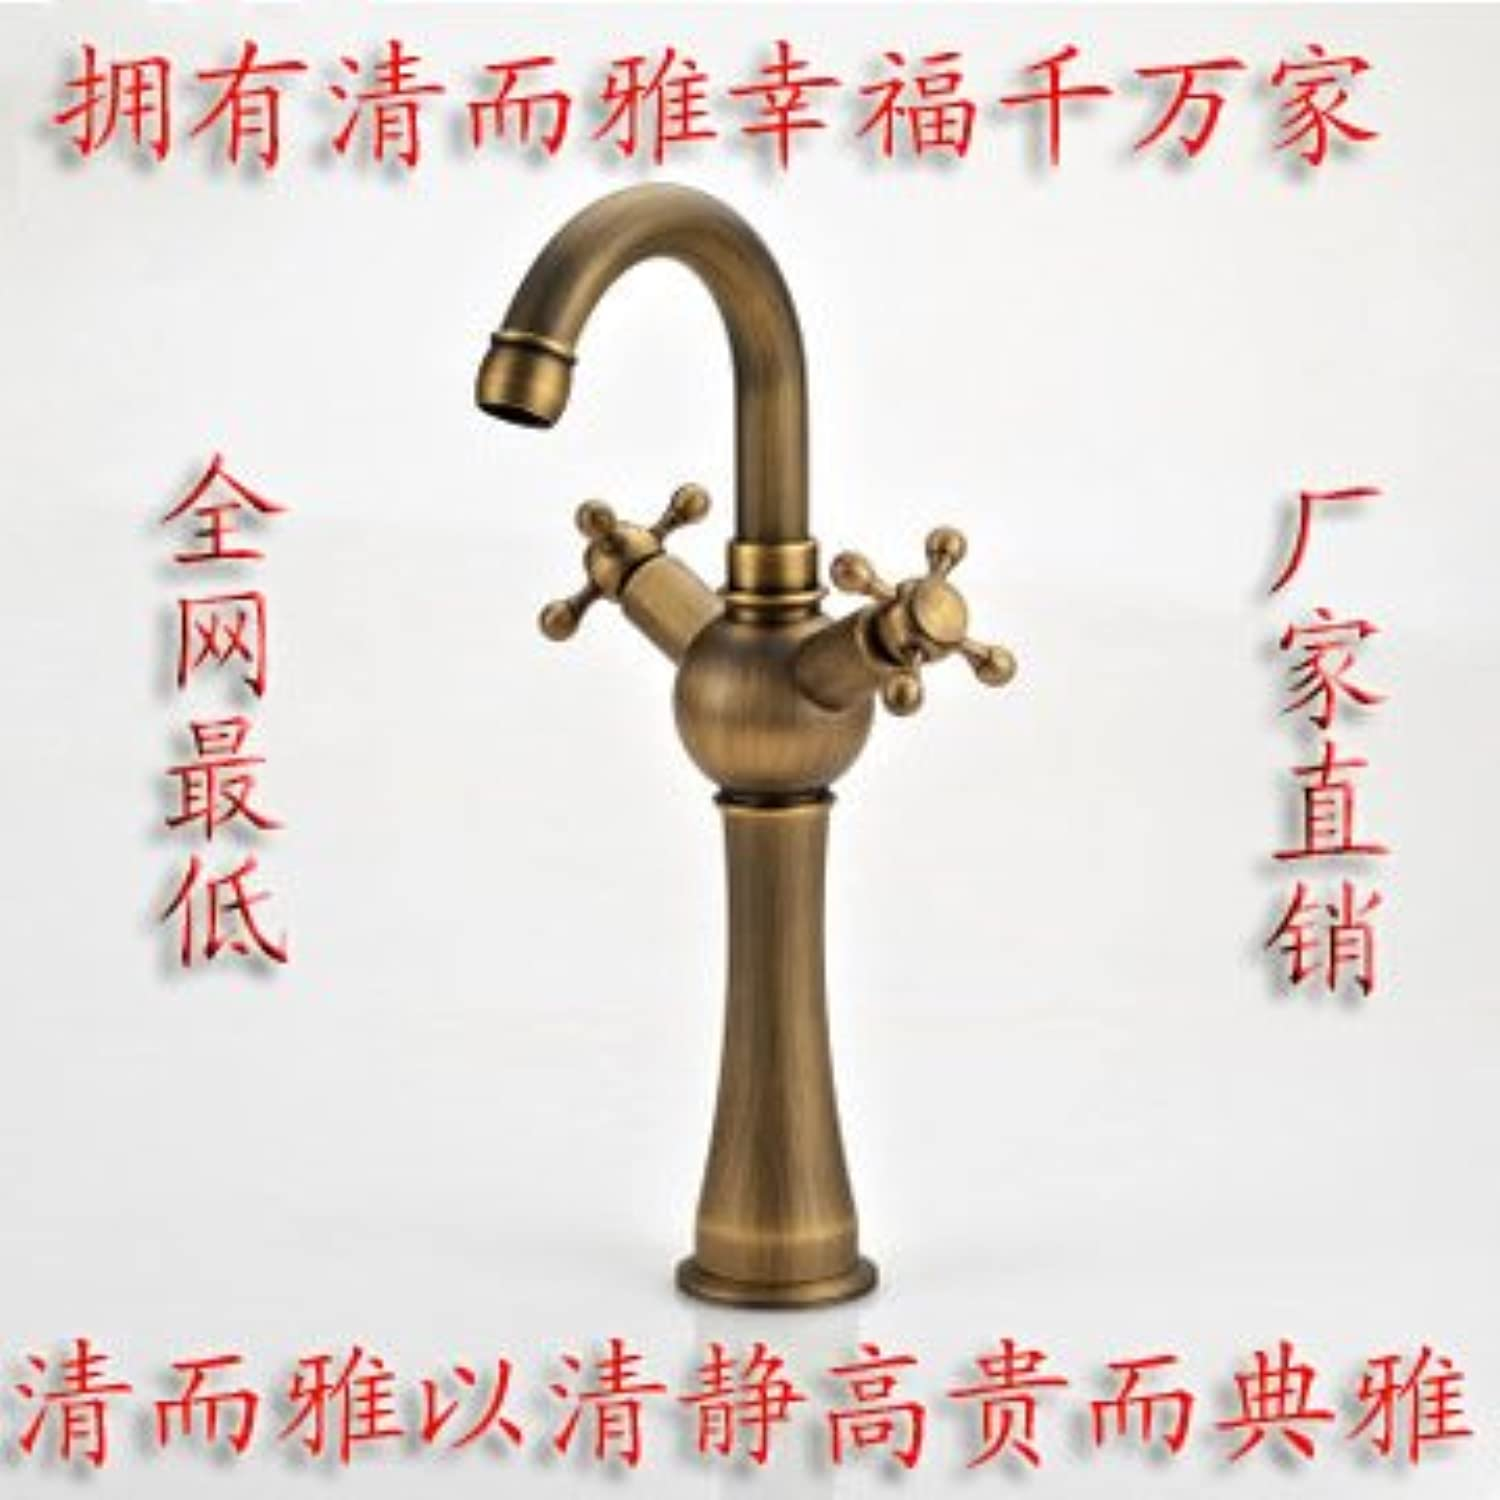 Gyps Faucet Basin Mixer Tap Waterfall Faucet Antique Bathroom Mixer Bar Mixer Shower Set Tap antique bathroom faucet Basin faucet antique 8889, hot & cold water tap to redate the pure copper basin 33X